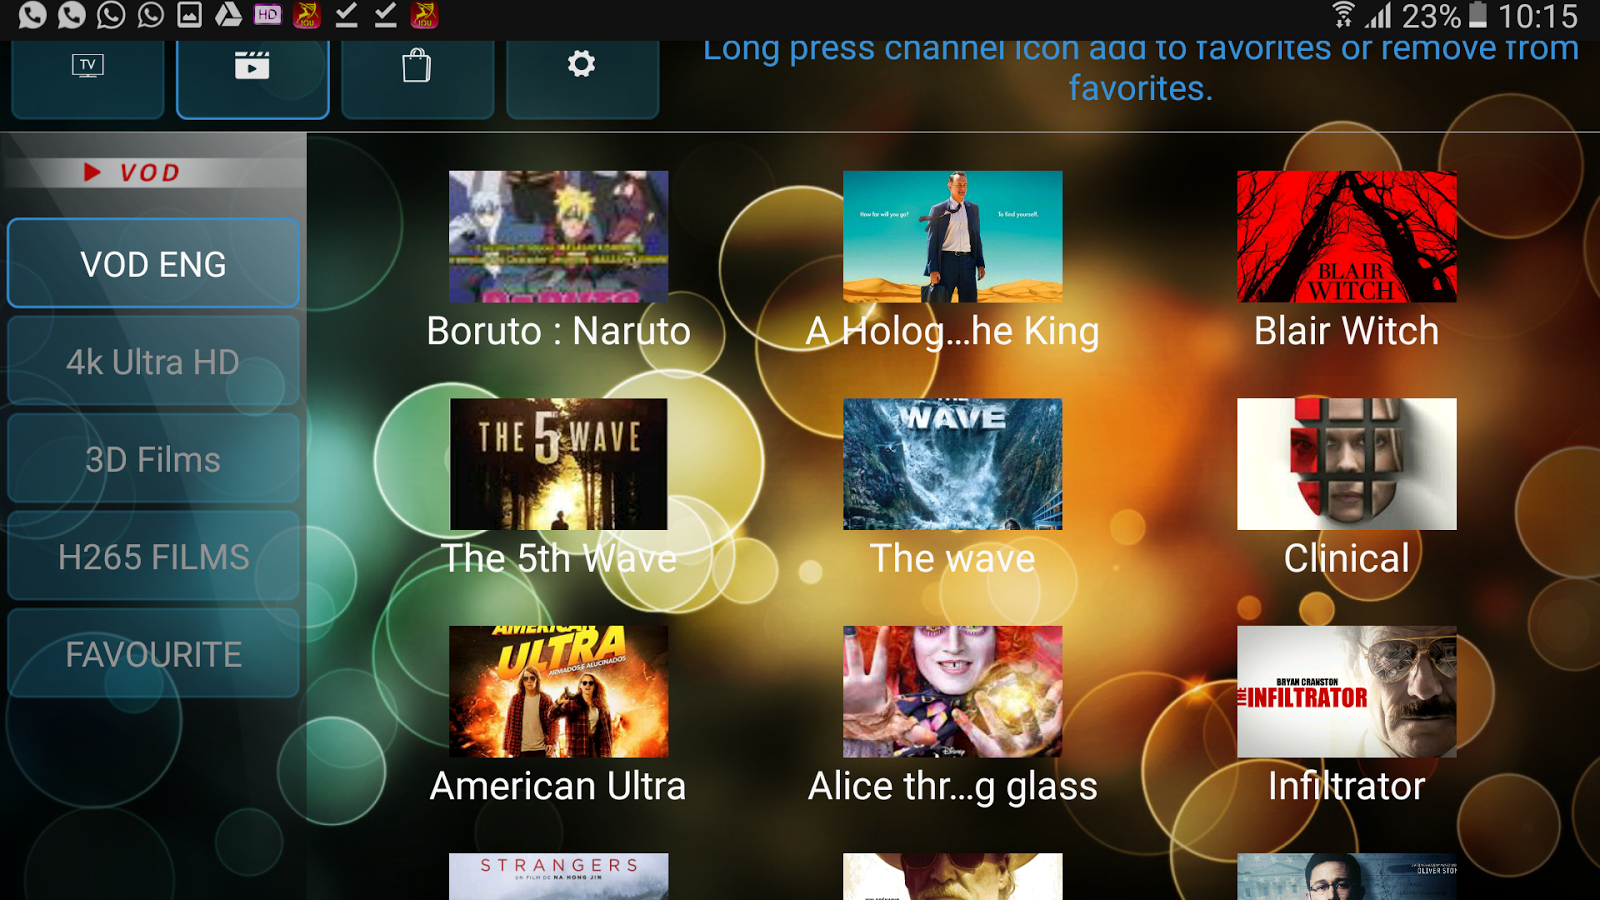 OPEN TV-BEST APK FOR LIVE TV IPTV ON ANDROID NO ADS AND FREE